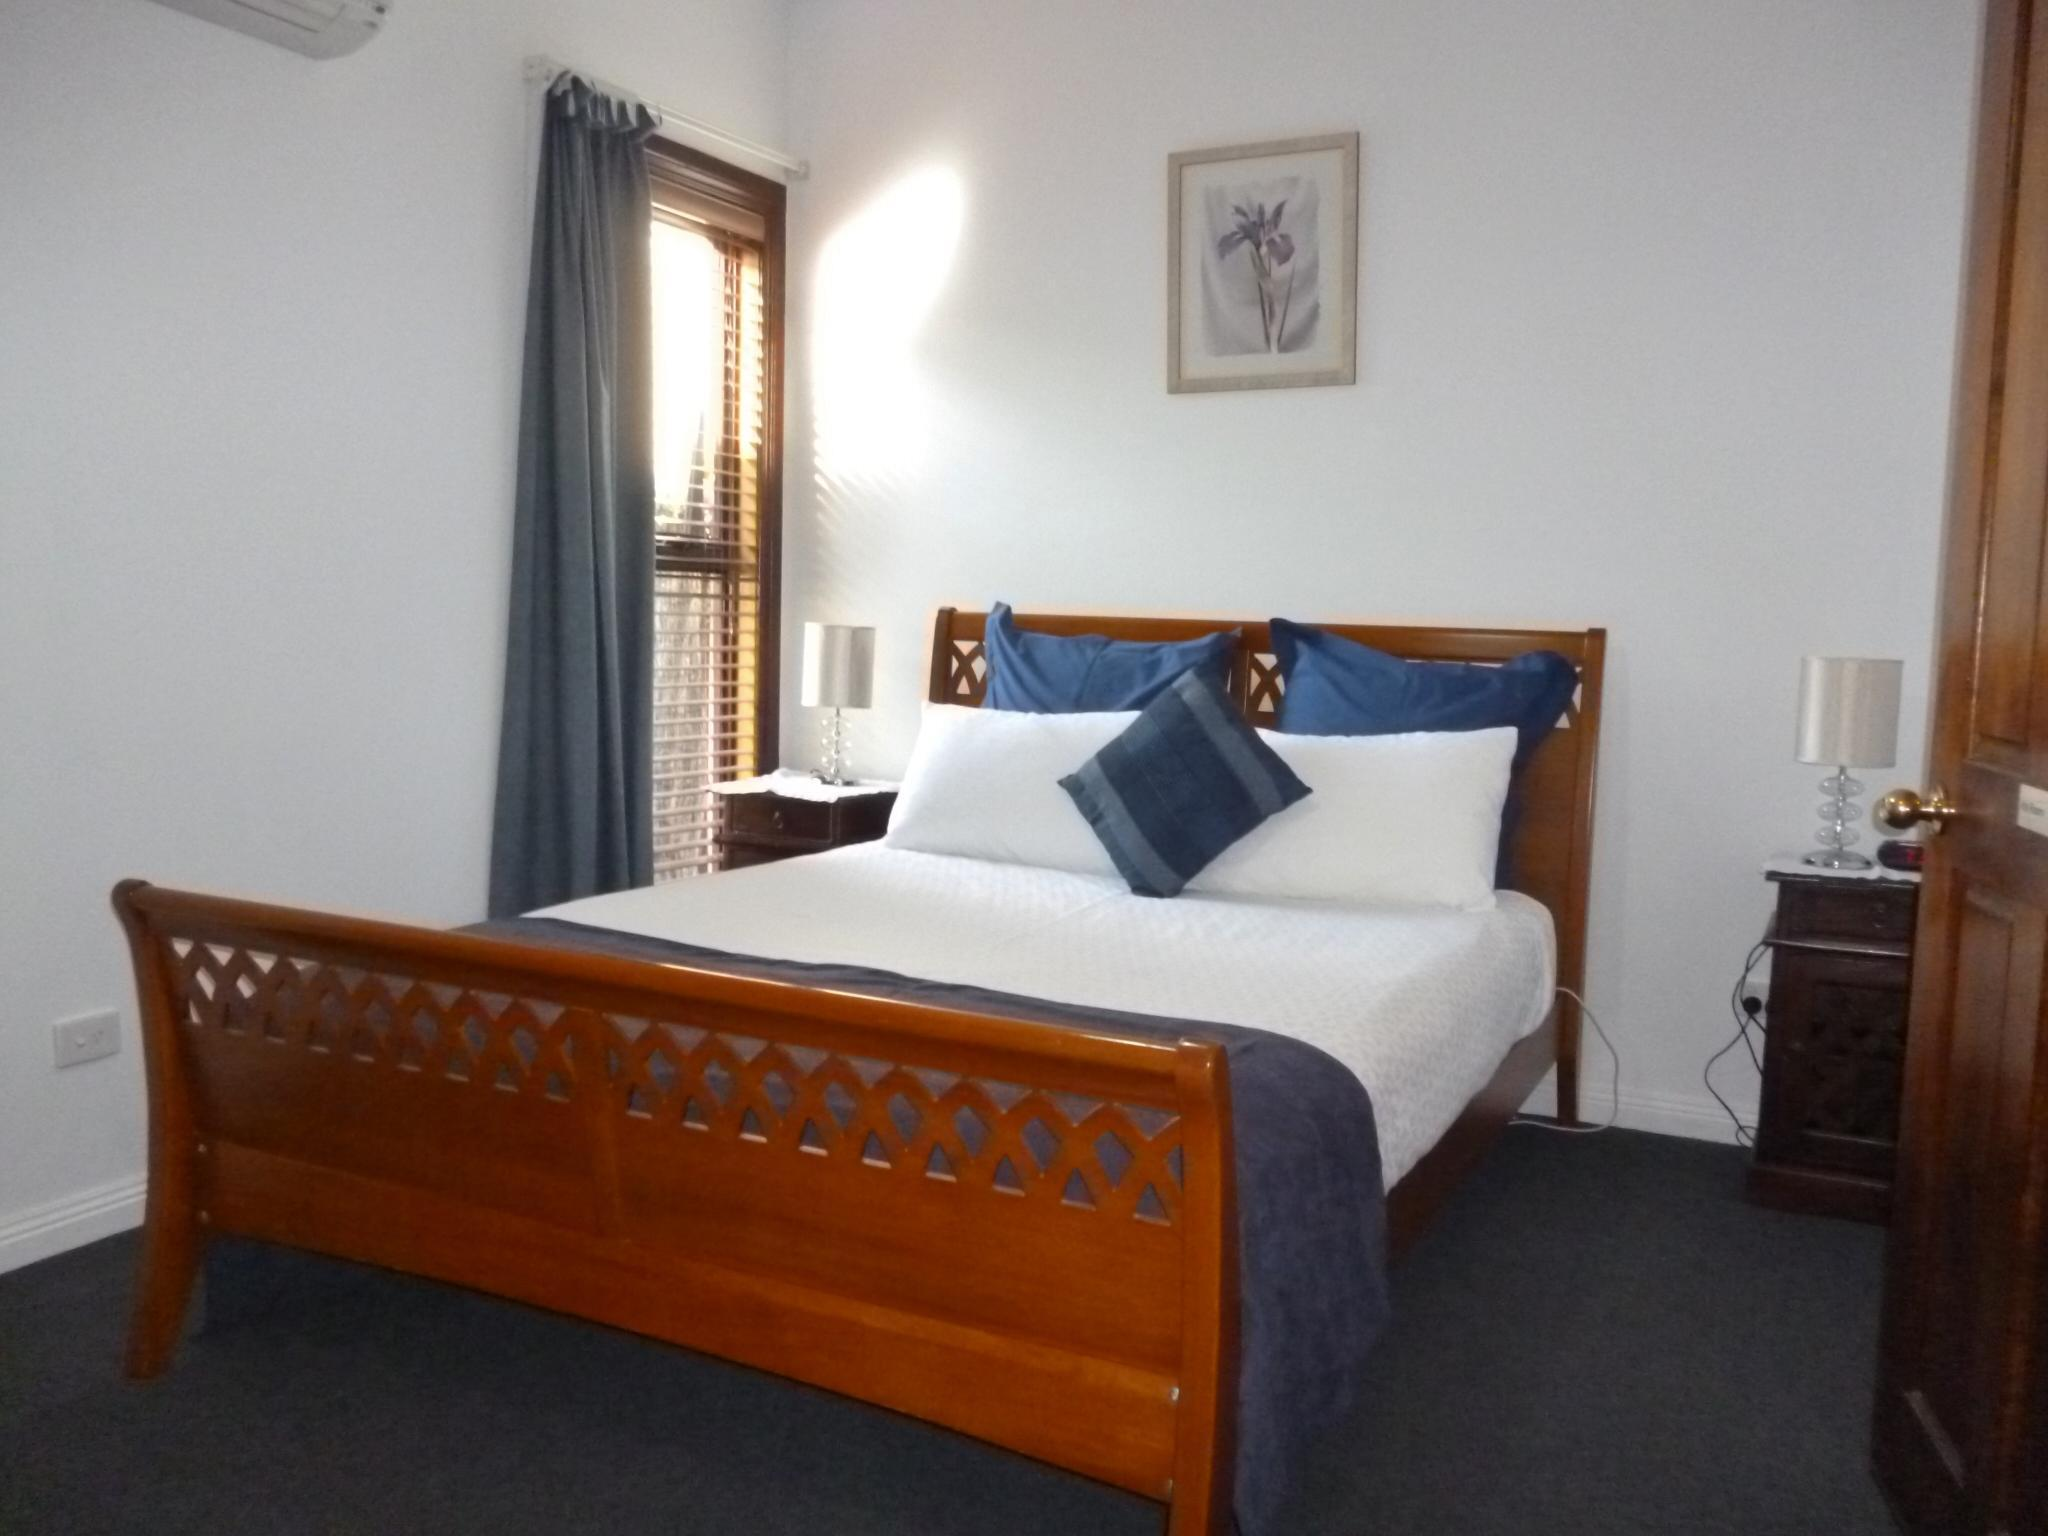 Tranquilles Bed and Breakfast, Latrobe - Pt A